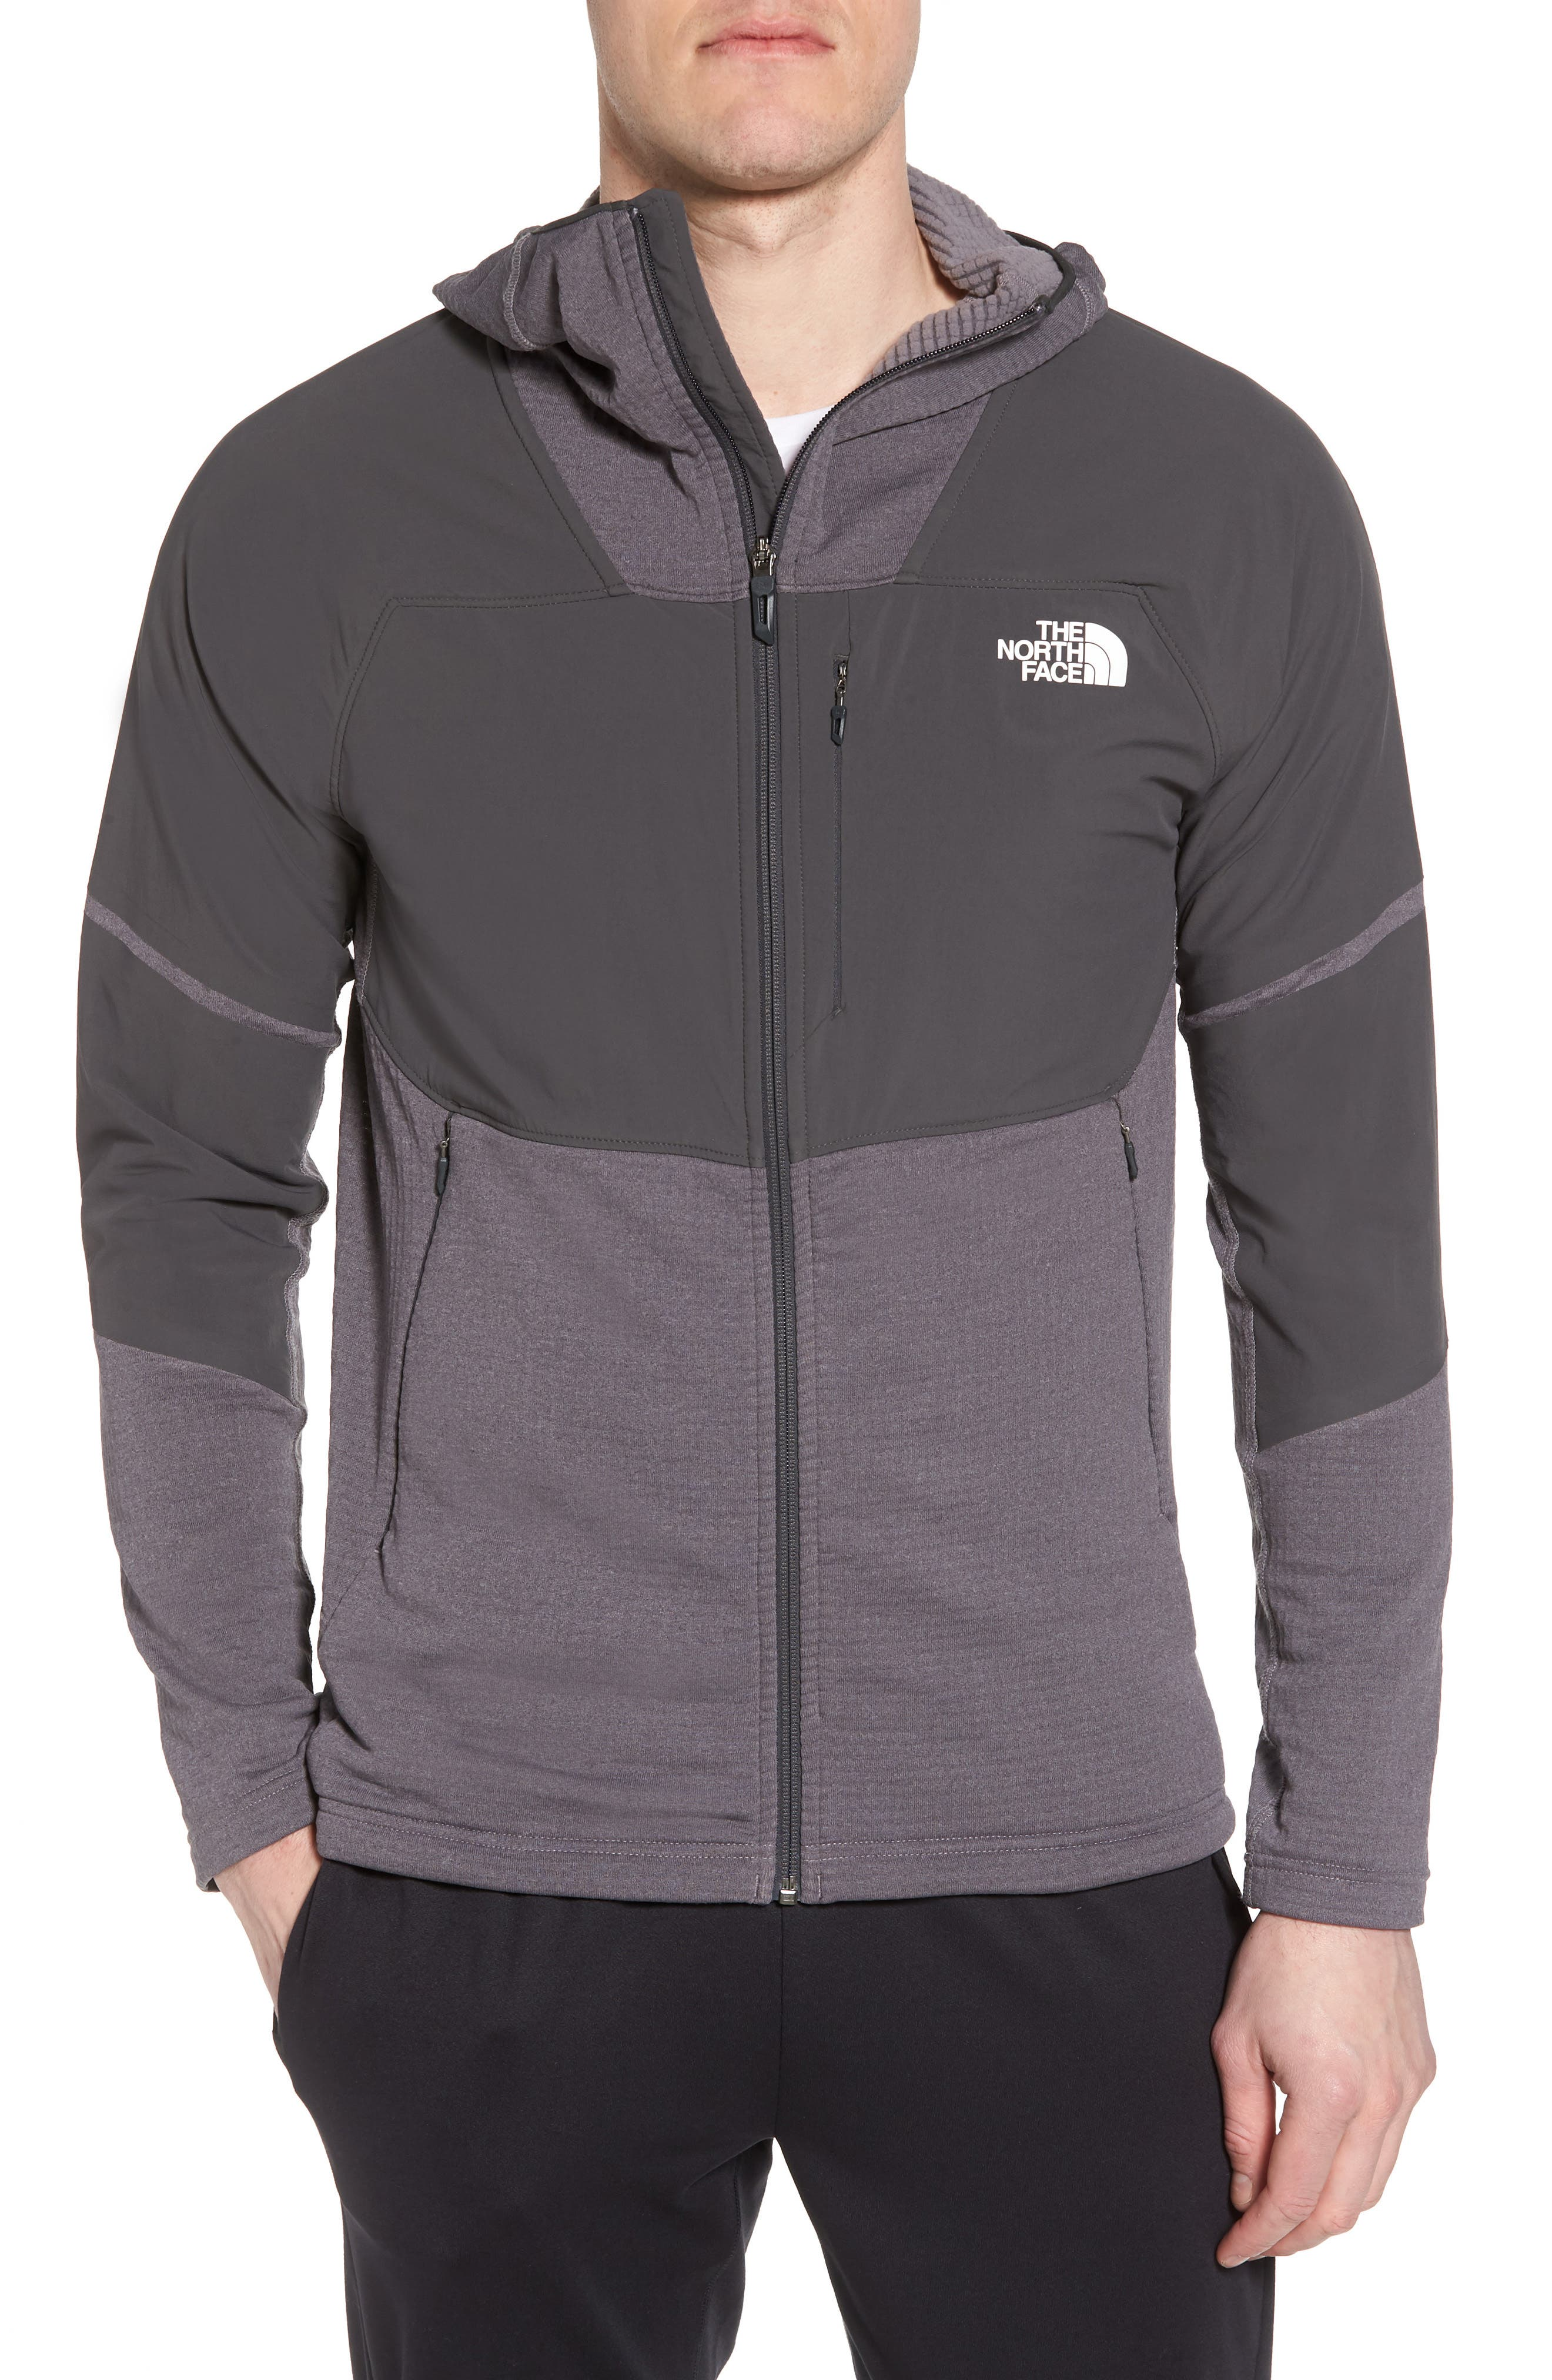 The North Face Progressor Power Grid™ Hooded Fleece Jacket